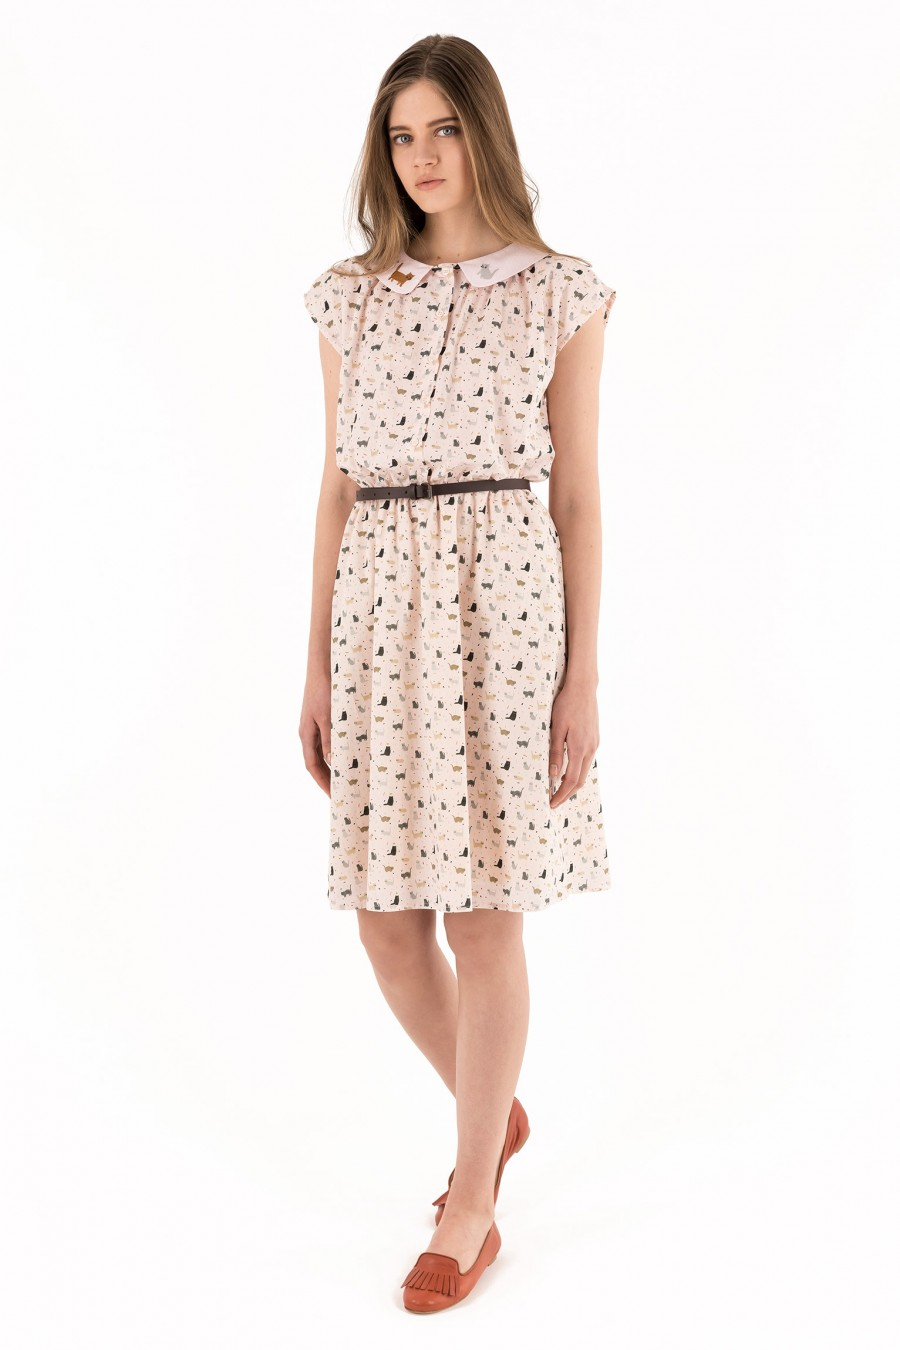 Poplin embroidered dress